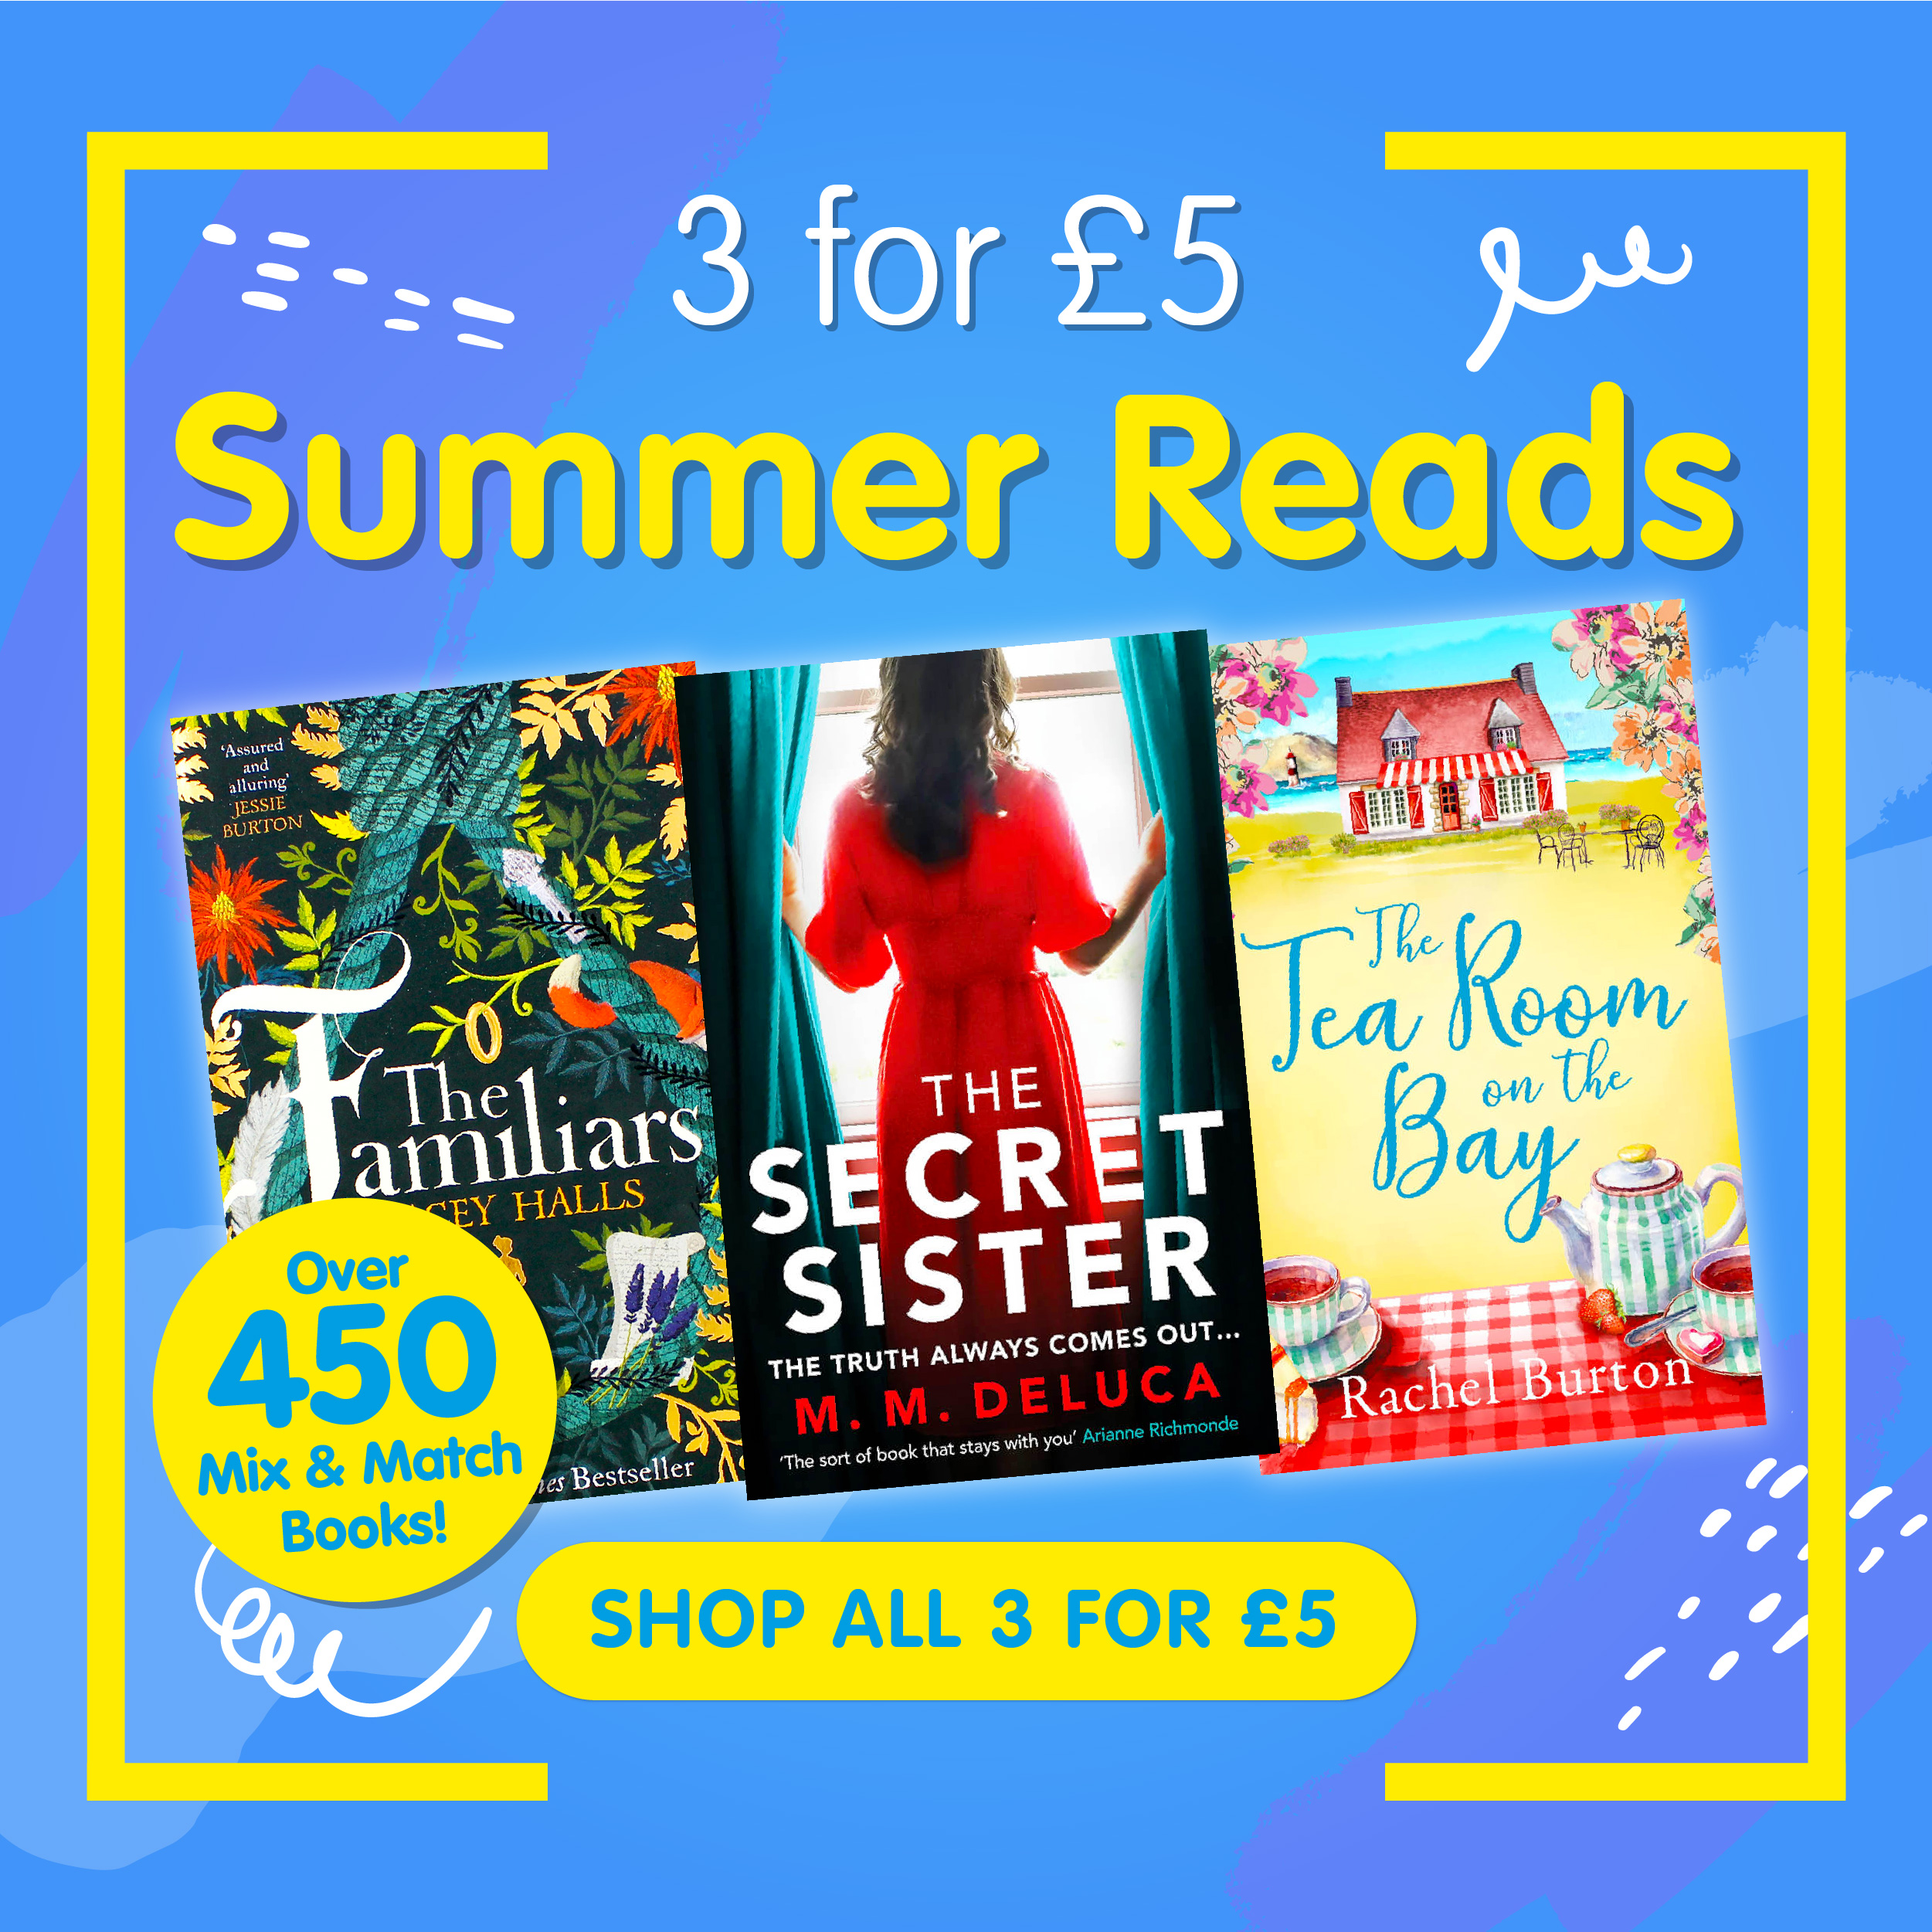 3 for £5 Summer Reads